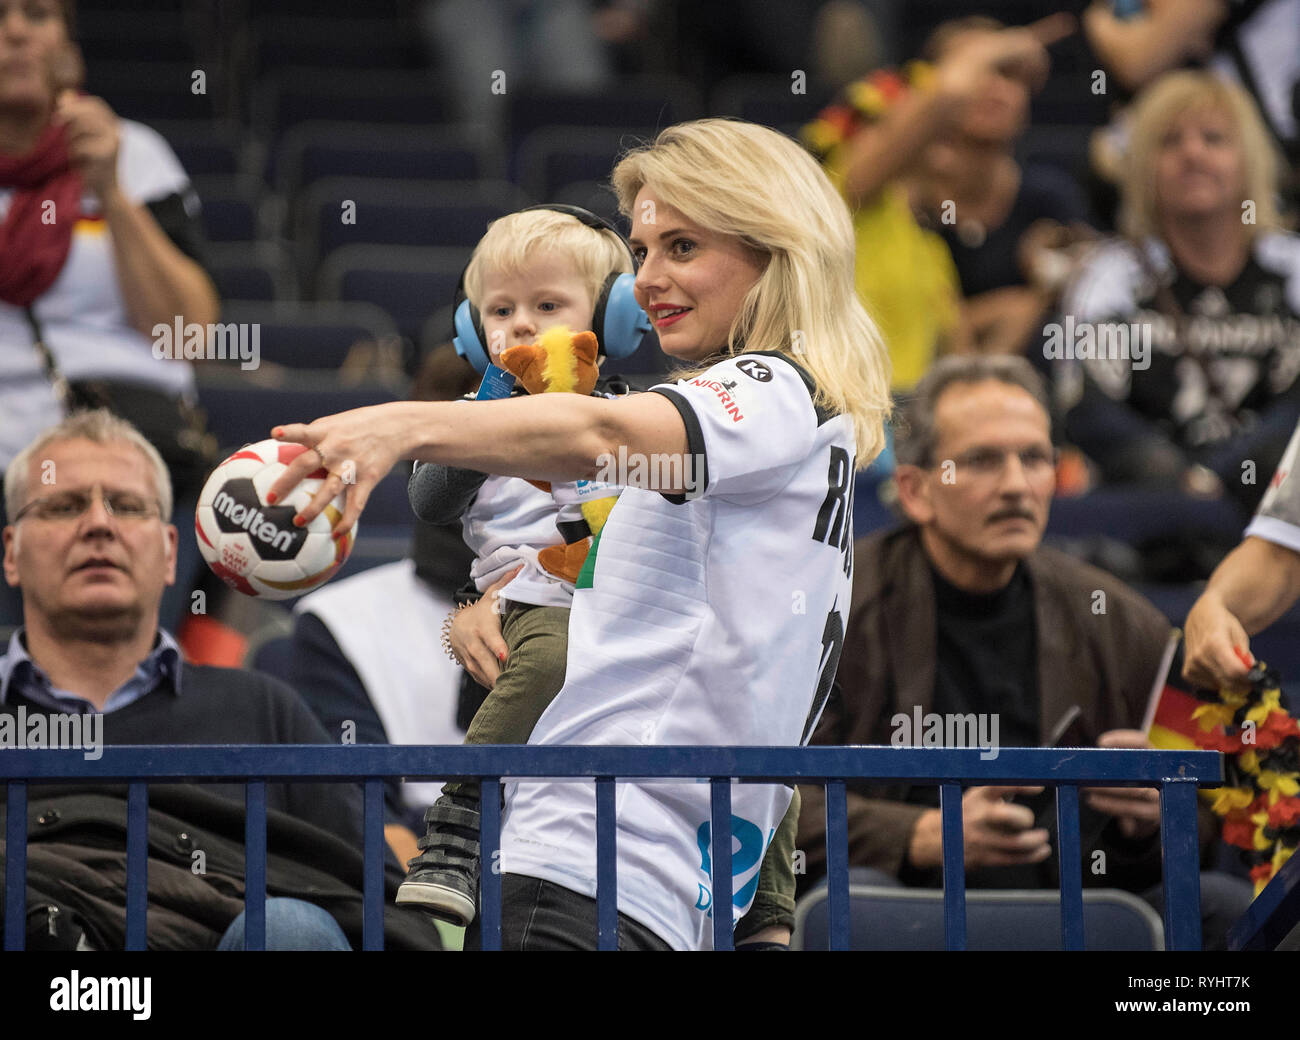 Hamburg, Deutschland. 25th Jan, 2019. Astrid ROGGISCH, wife of Oliver ROGGISCH (Team Coordinator, GER/not pictured) with son on the Tribuene, semi final Germany (GER) - Norway (NOR) 25 - 31, on 25.01.2019 in Hamburg/Germany. Handball World Cup 2019, from 10.01. - 27.01.2019 in Germany/Denmark. | usage worldwide Credit: dpa/Alamy Live News Stock Photo